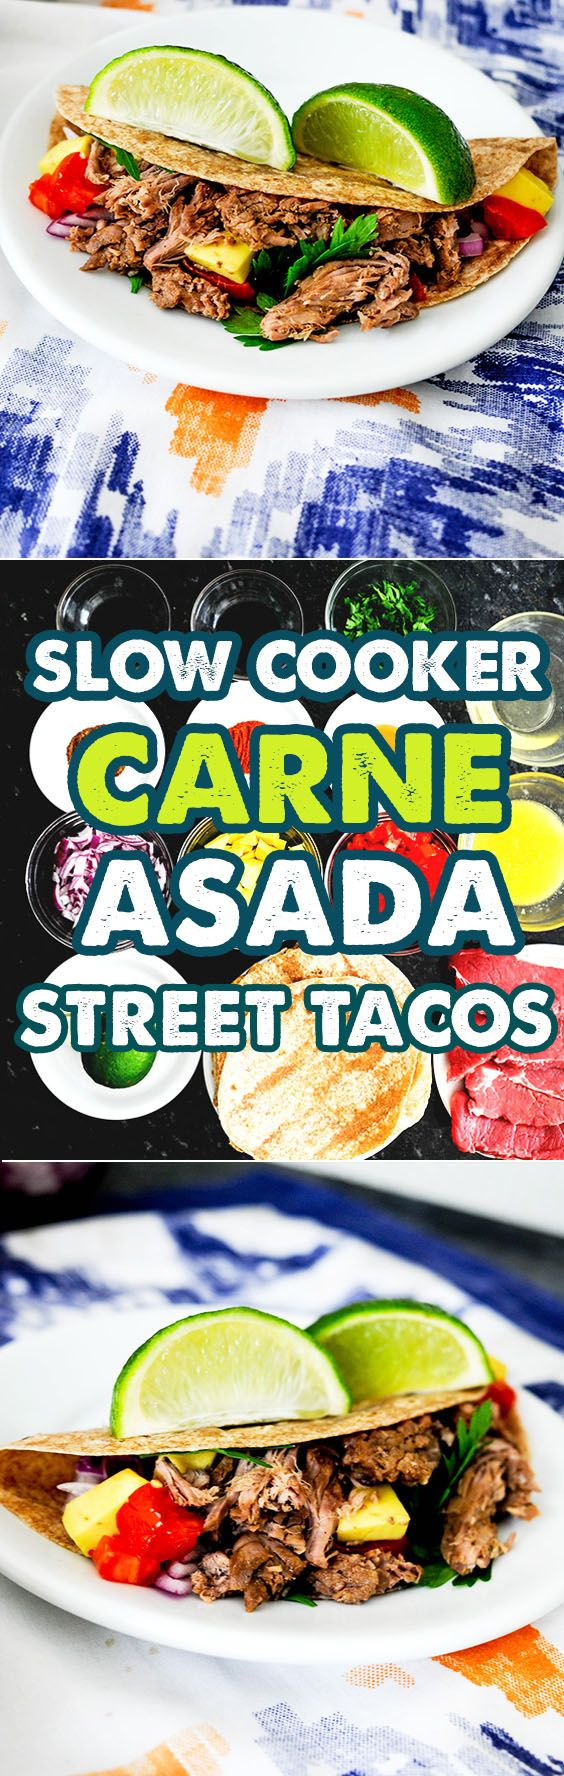 Slow Cooker Carne Asada Street Tacos Recipe is a perfect blend of sweet, spicy, salty and a little bit sour because of the orange juice. The meat will be so tender after putting in the slow cooker that your kids will definitely love it. The spices used adds a different kick and the garlic compliments it.